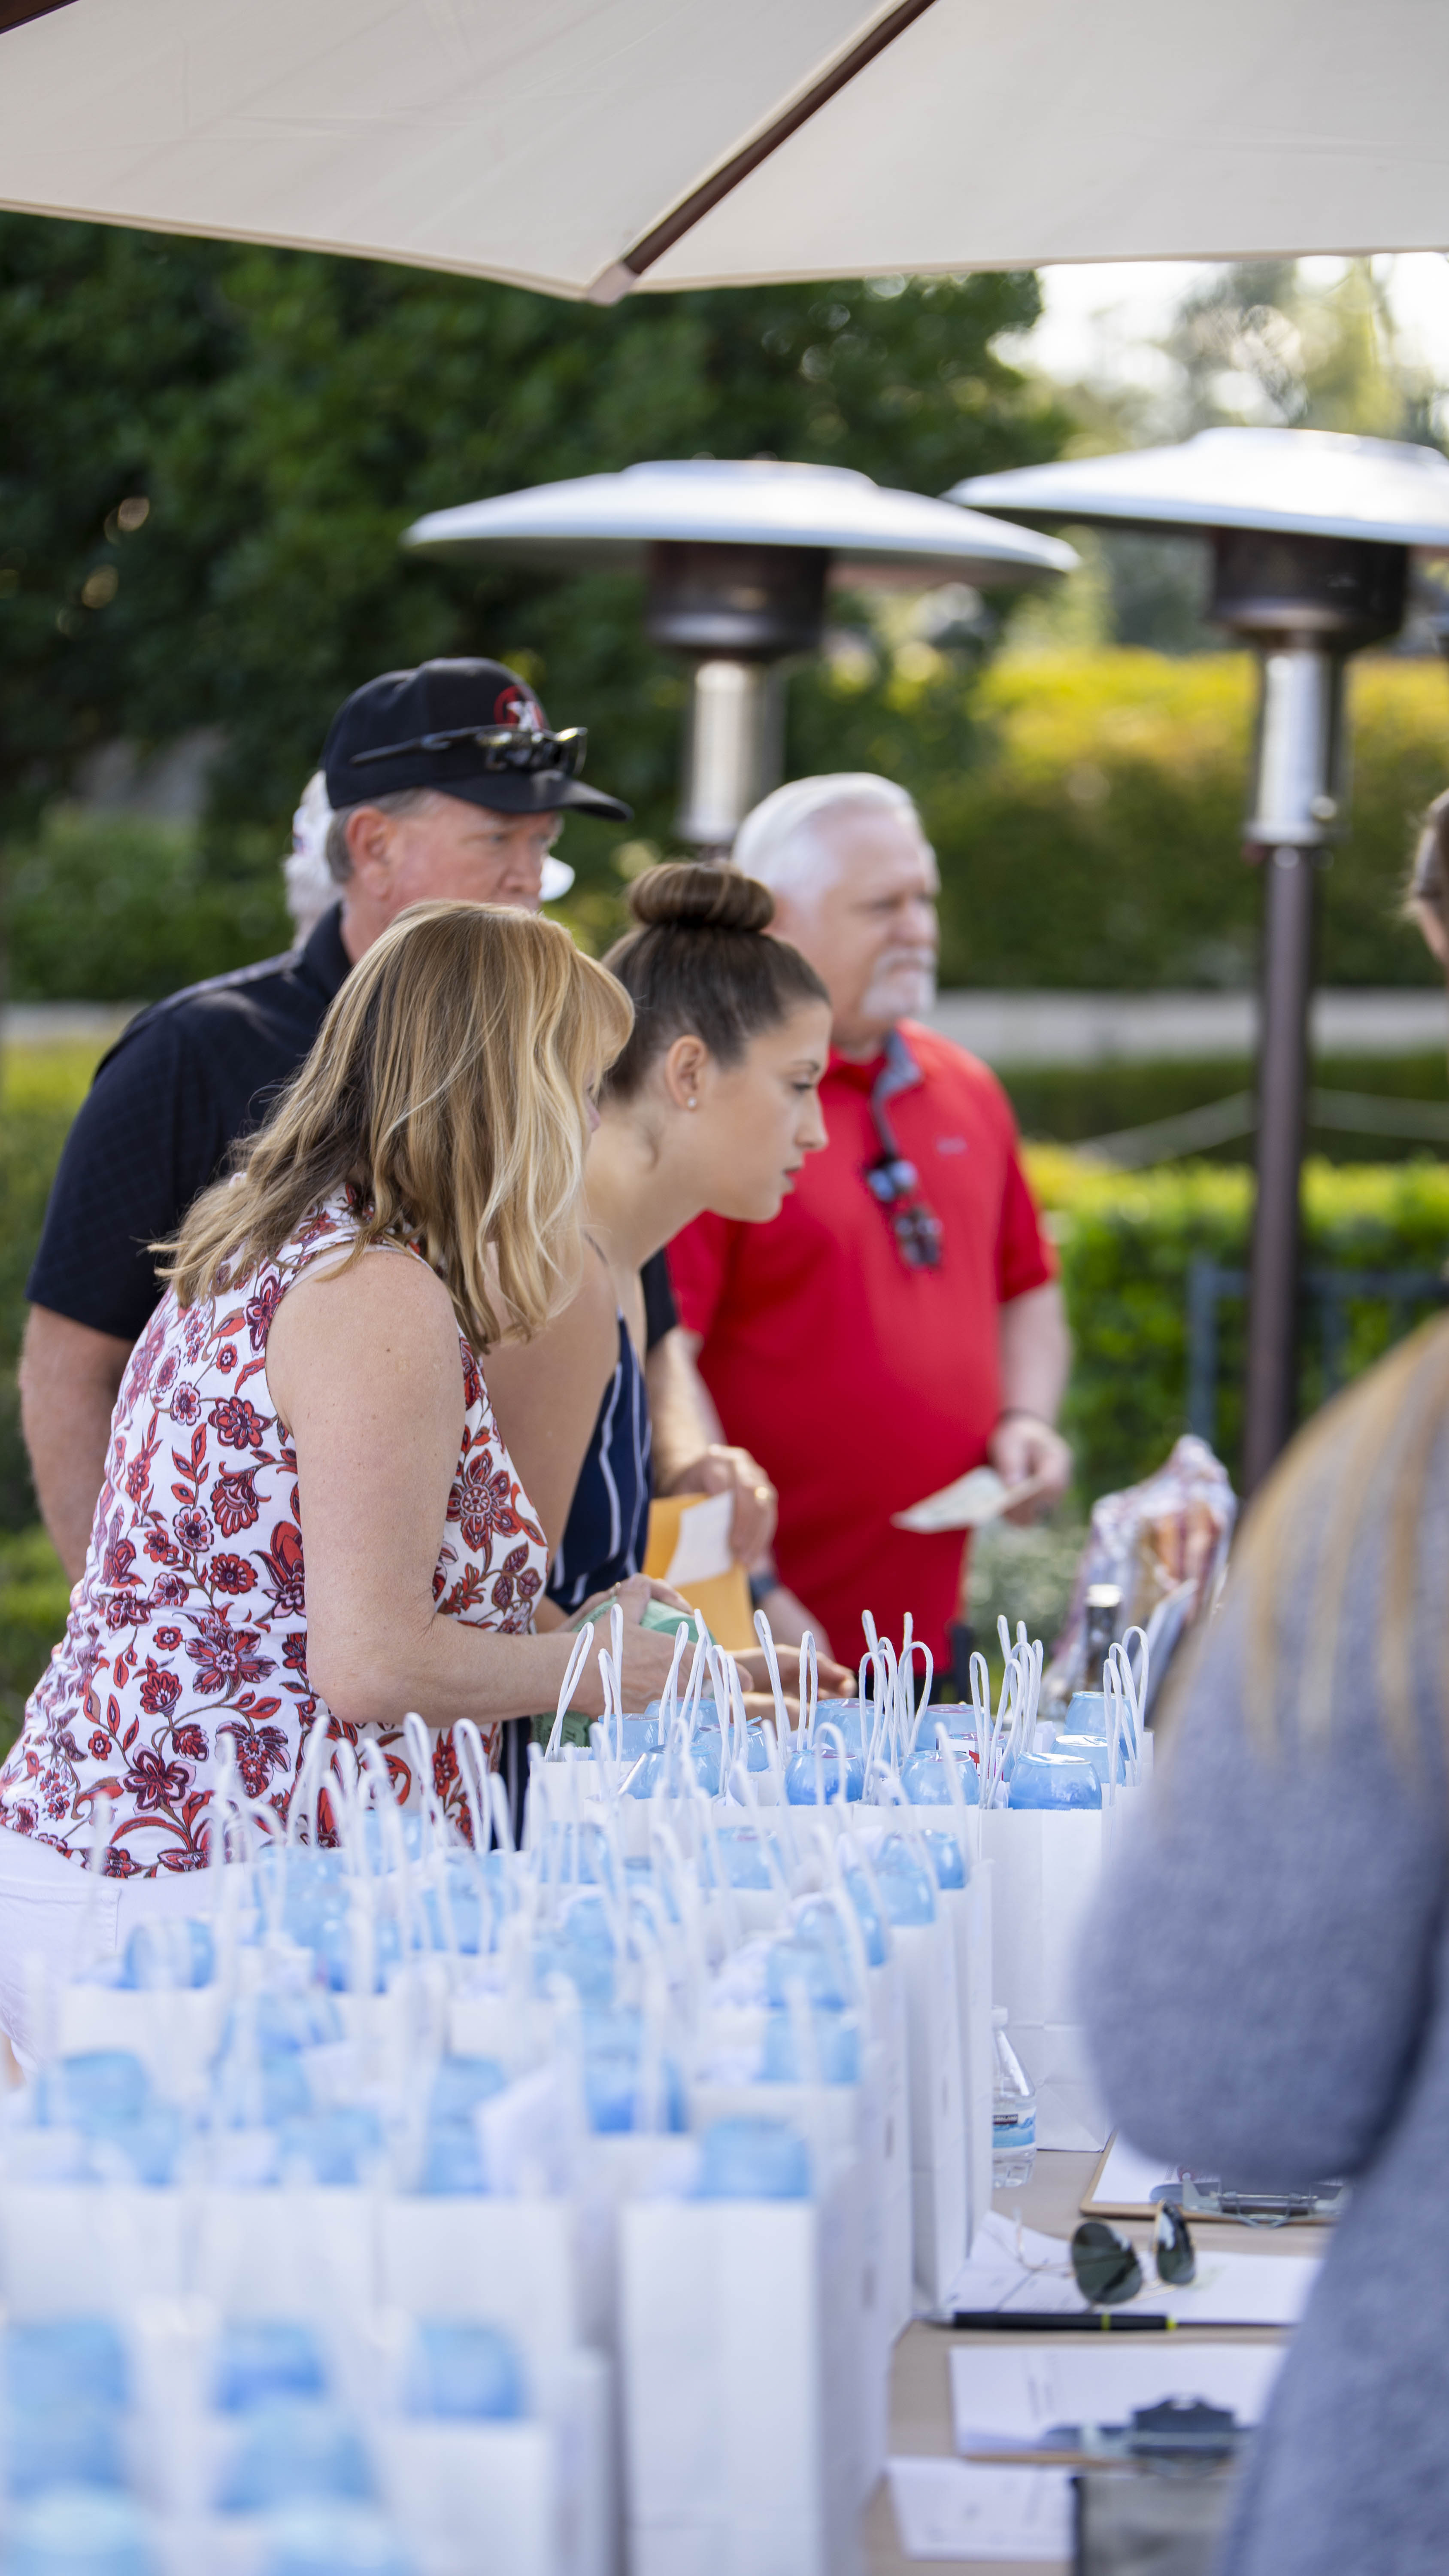 Alabaster Jar Project 501(c)(3) 3rd Annual Golf Tournament Fundraiser gallery image #33